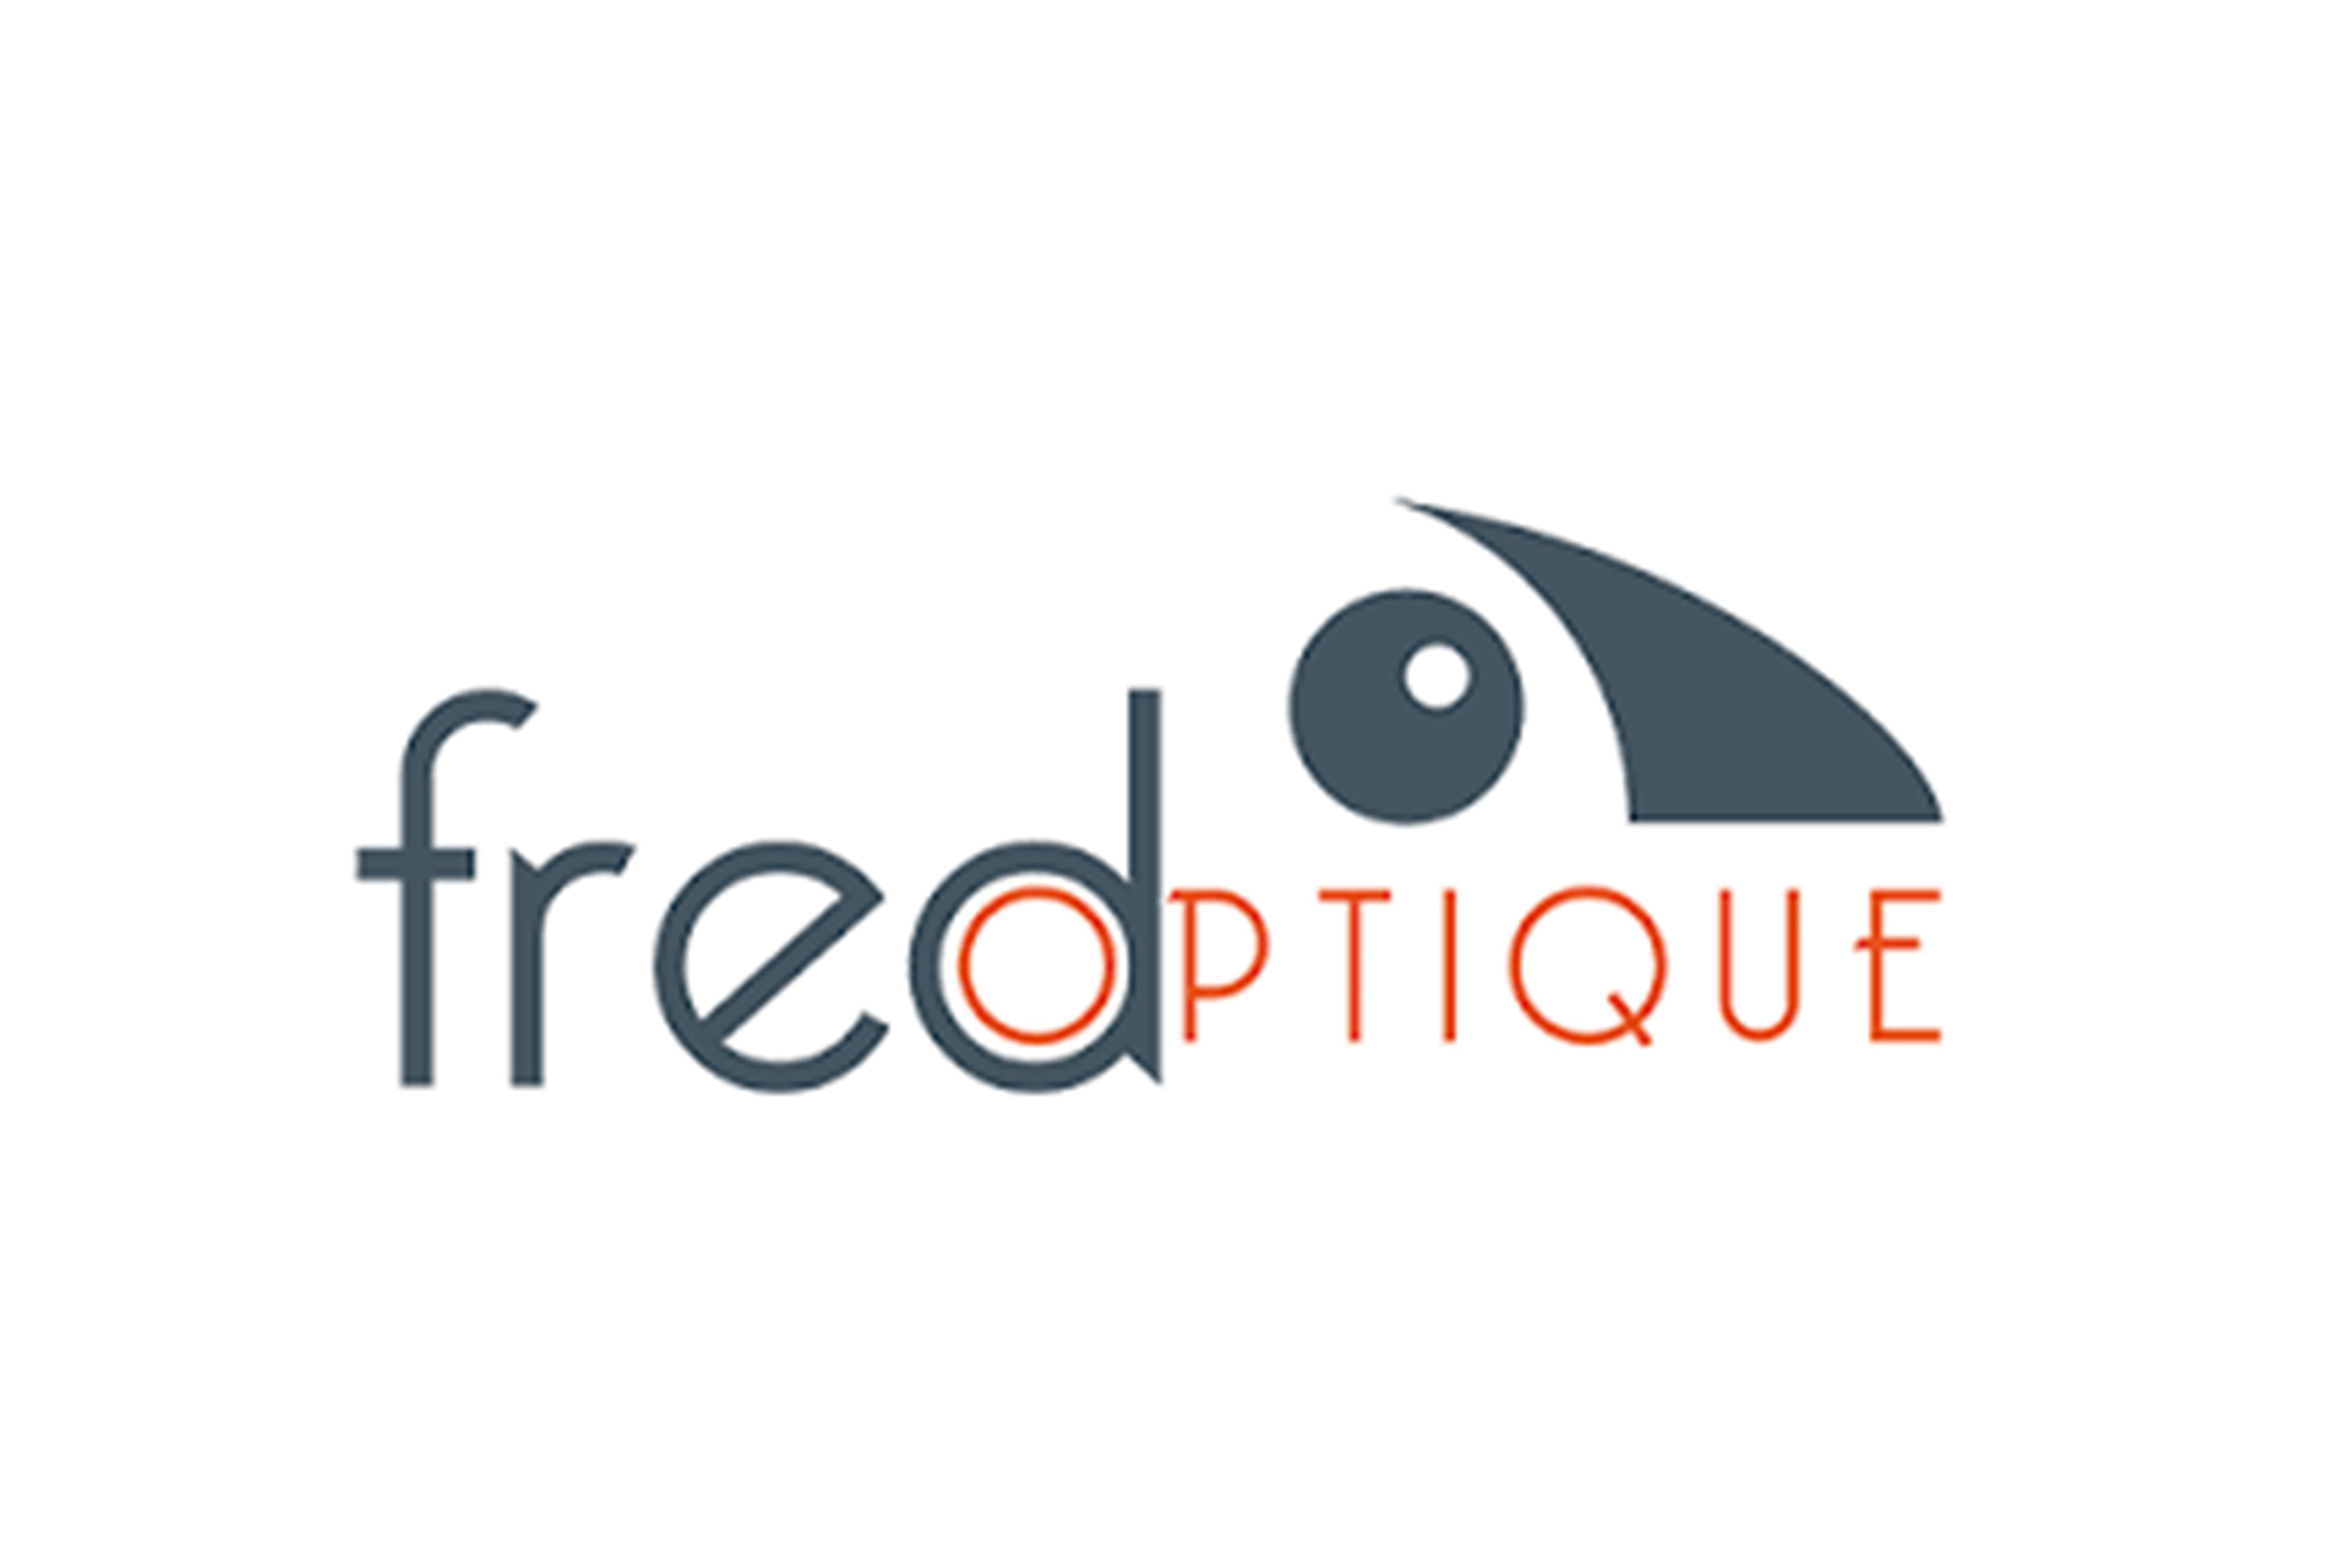 Fred\' Optique